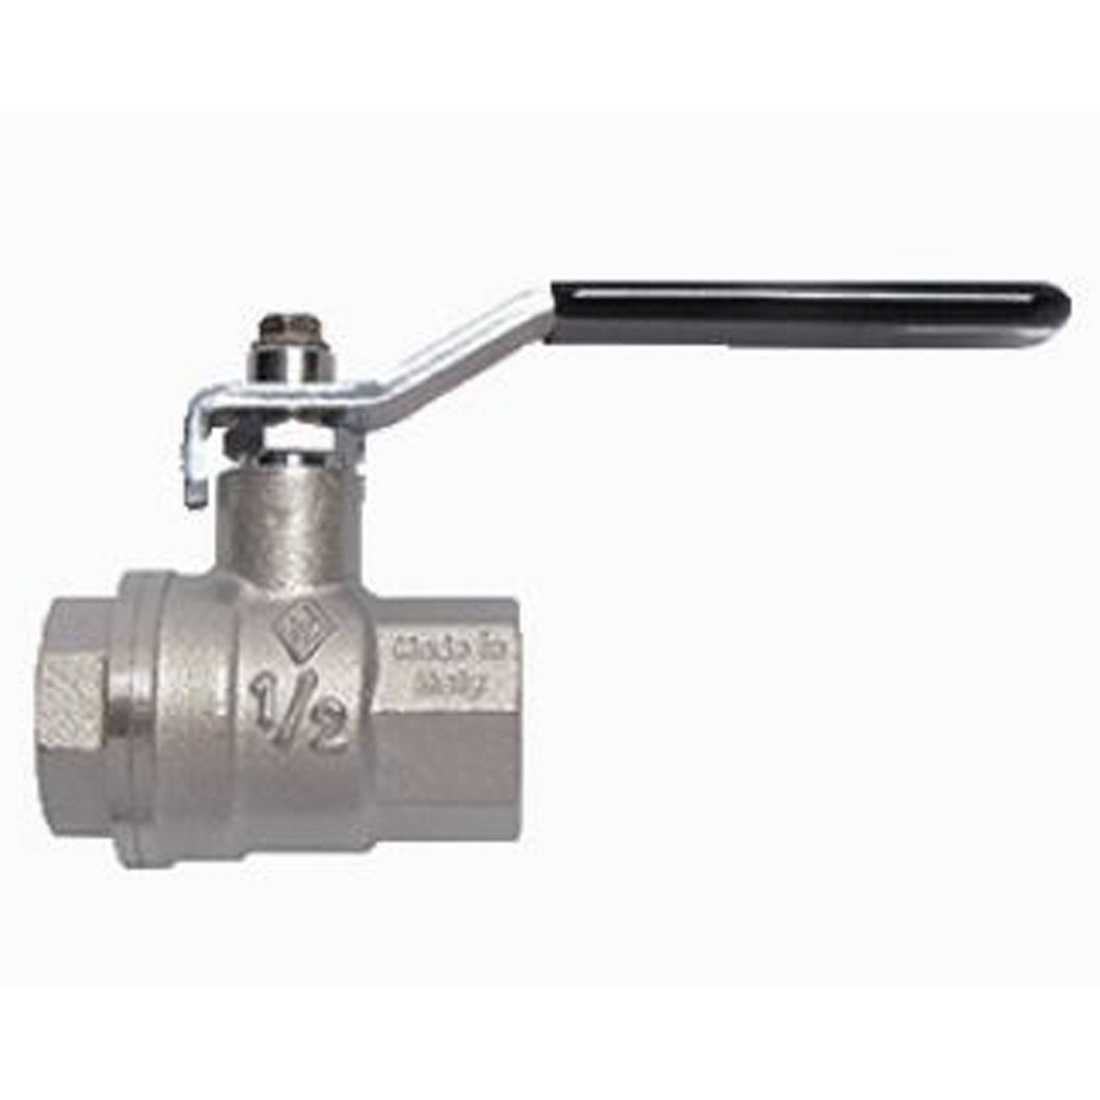 O8 Series Full Flow Ball Valve 32mm Female x Female Water 362psi Long Handle Brass Nickel